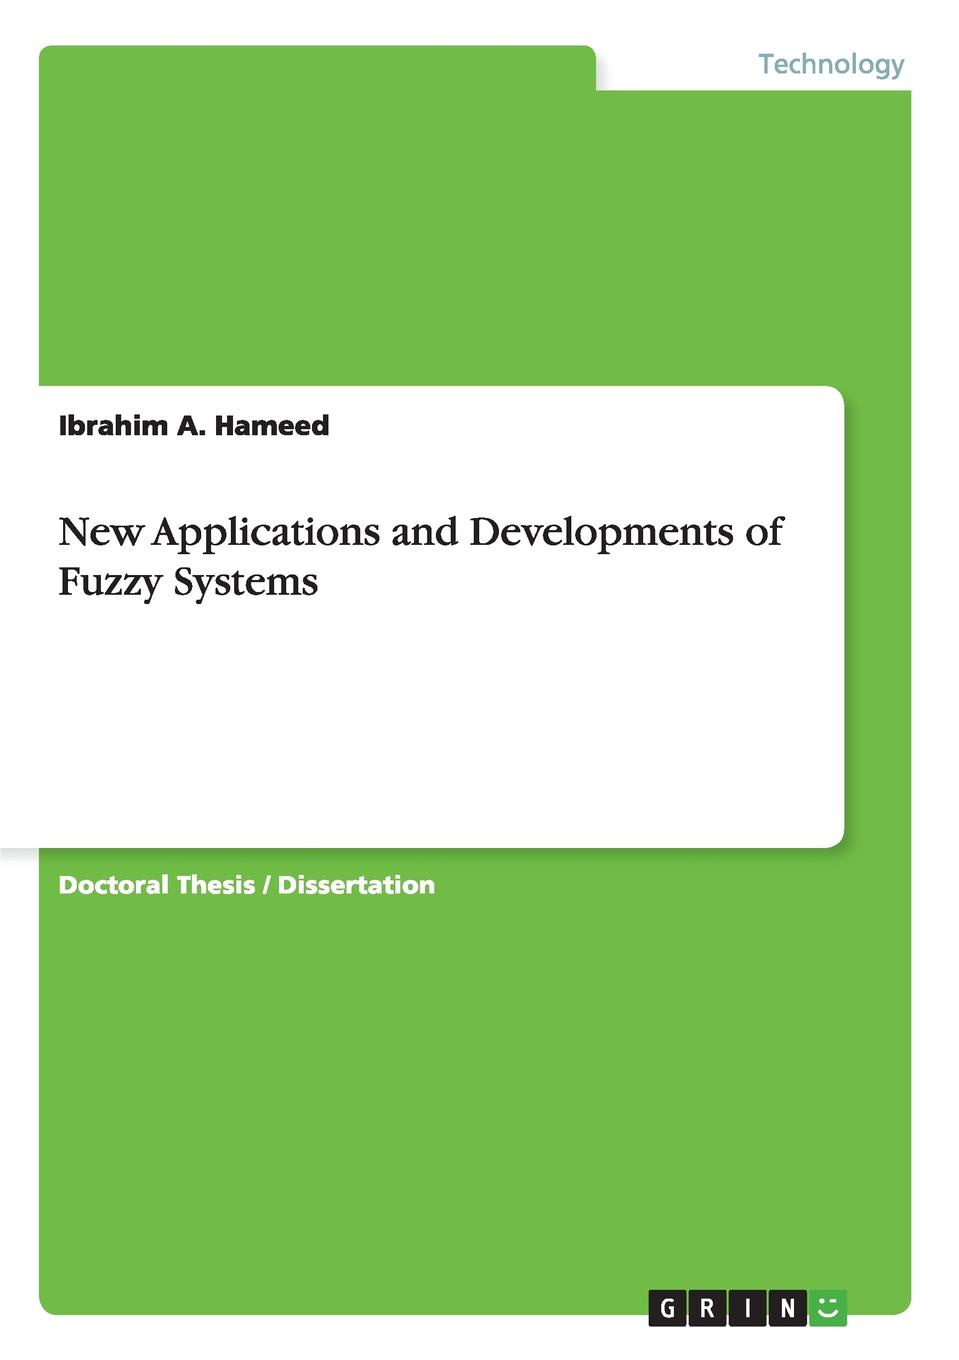 Ibrahim A. Hameed New Applications and Developments of Fuzzy Systems meriem nachidi stabilization of t s fuzzy systems with application on a greenhouse